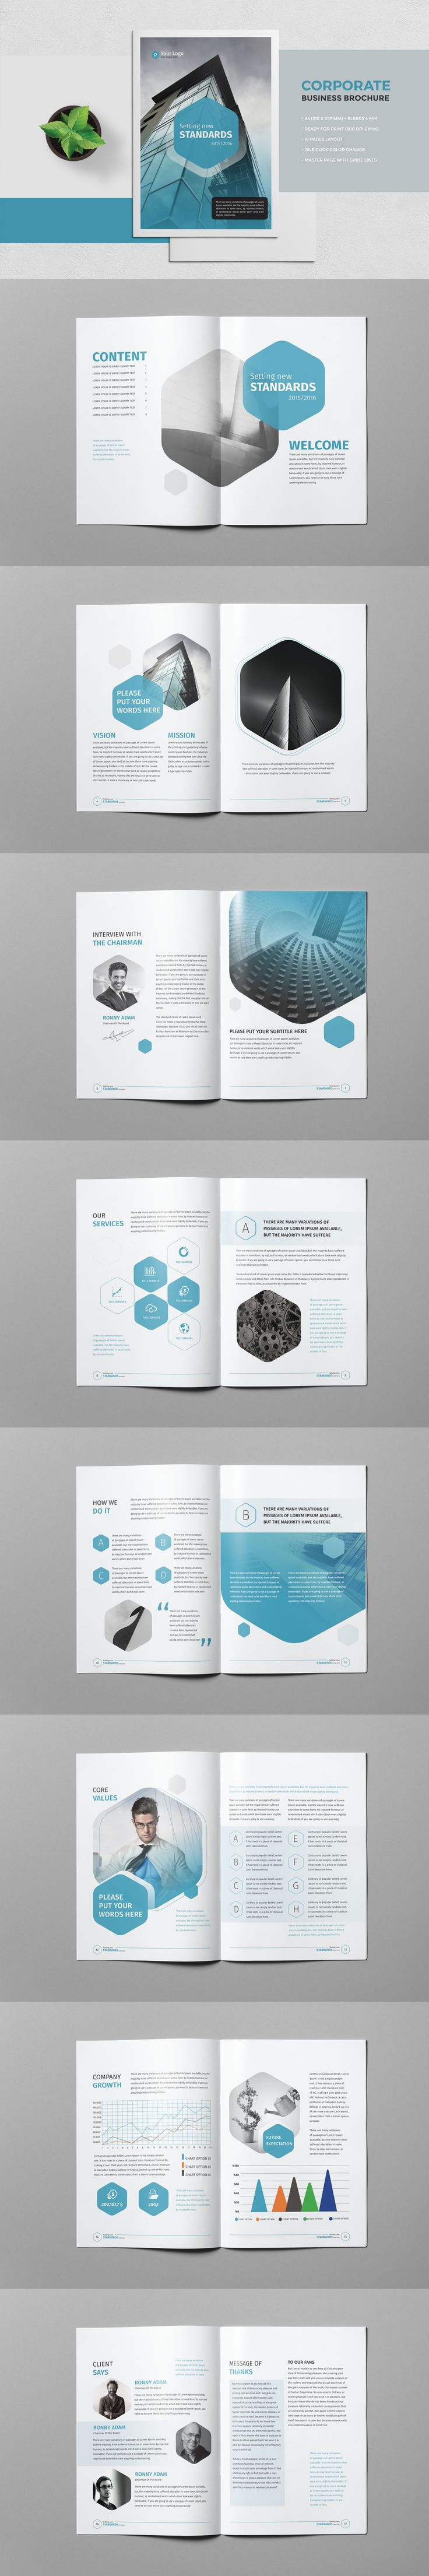 Corporate Business Brochure 18 Pages A4 Template InDesign INDD